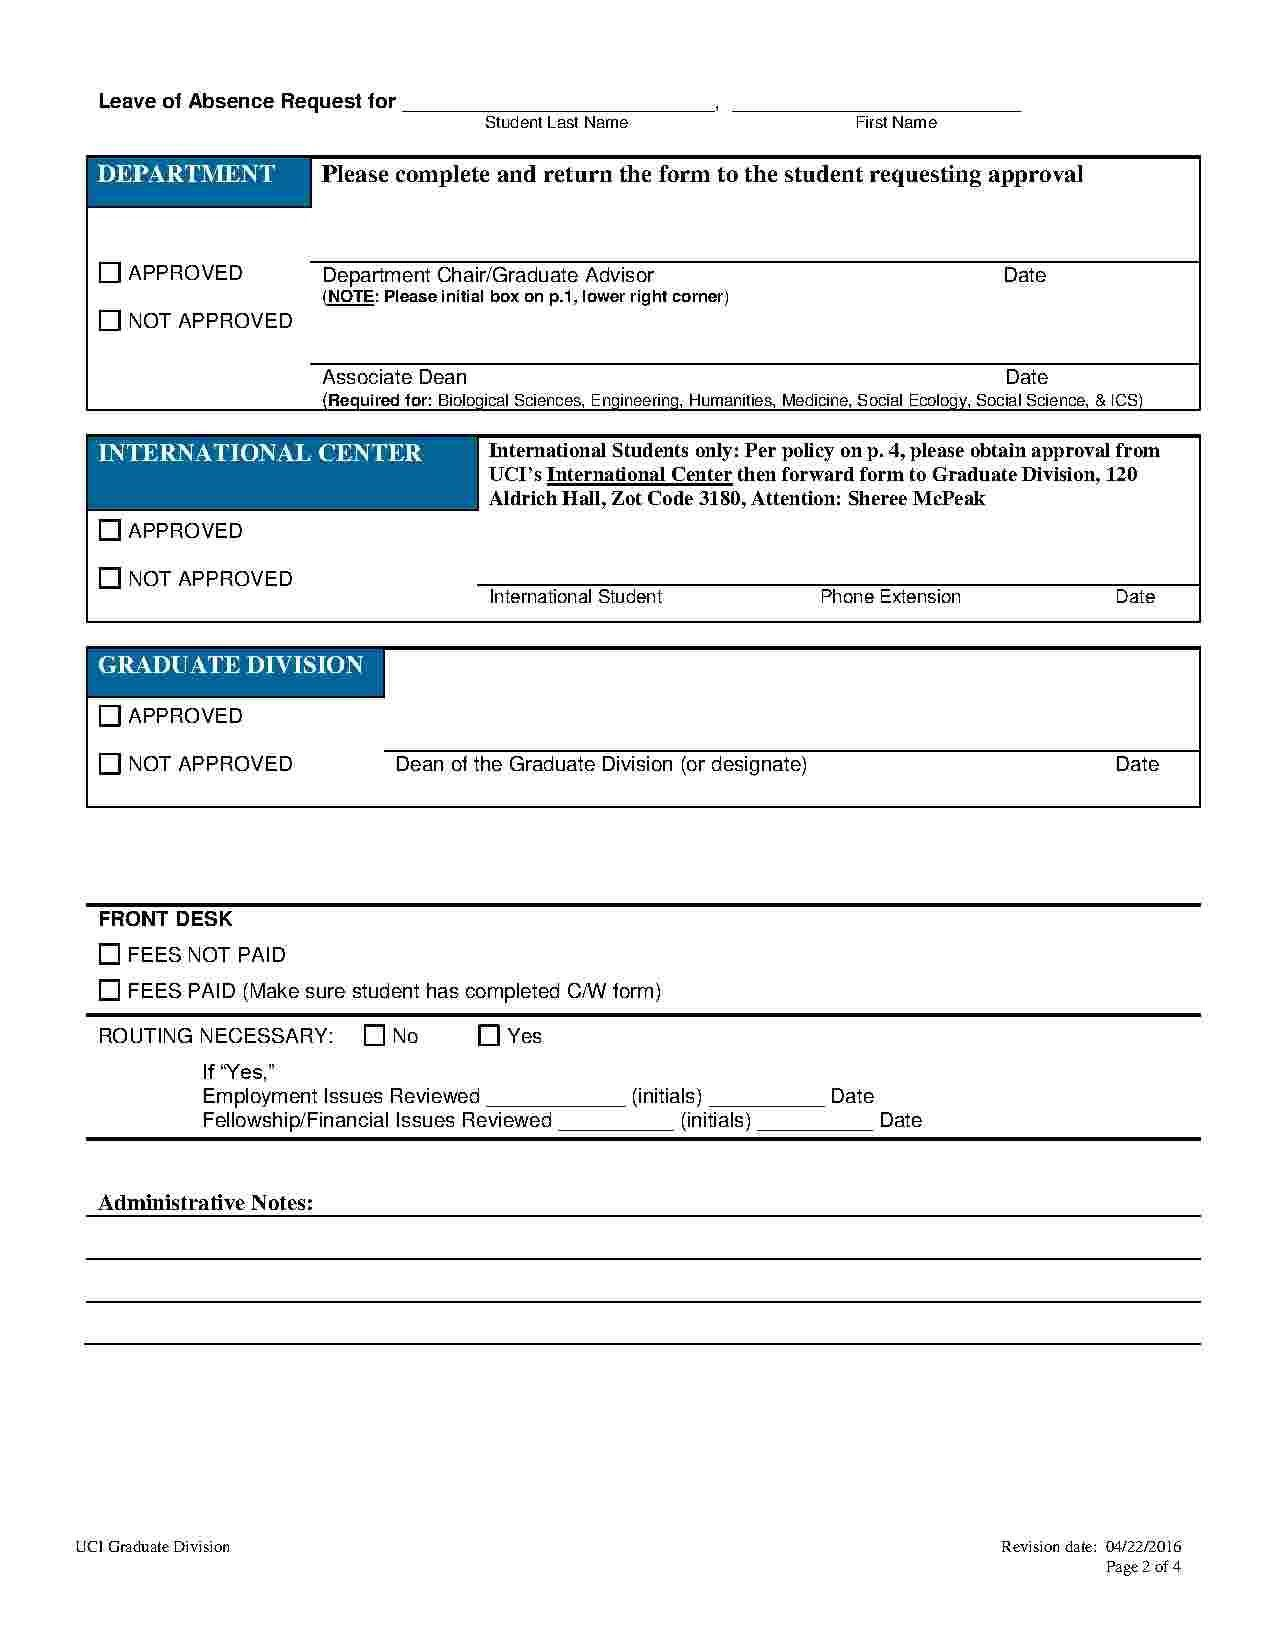 002 Shocking Leave Of Absence Form Template Example  Medical Request FreeFull